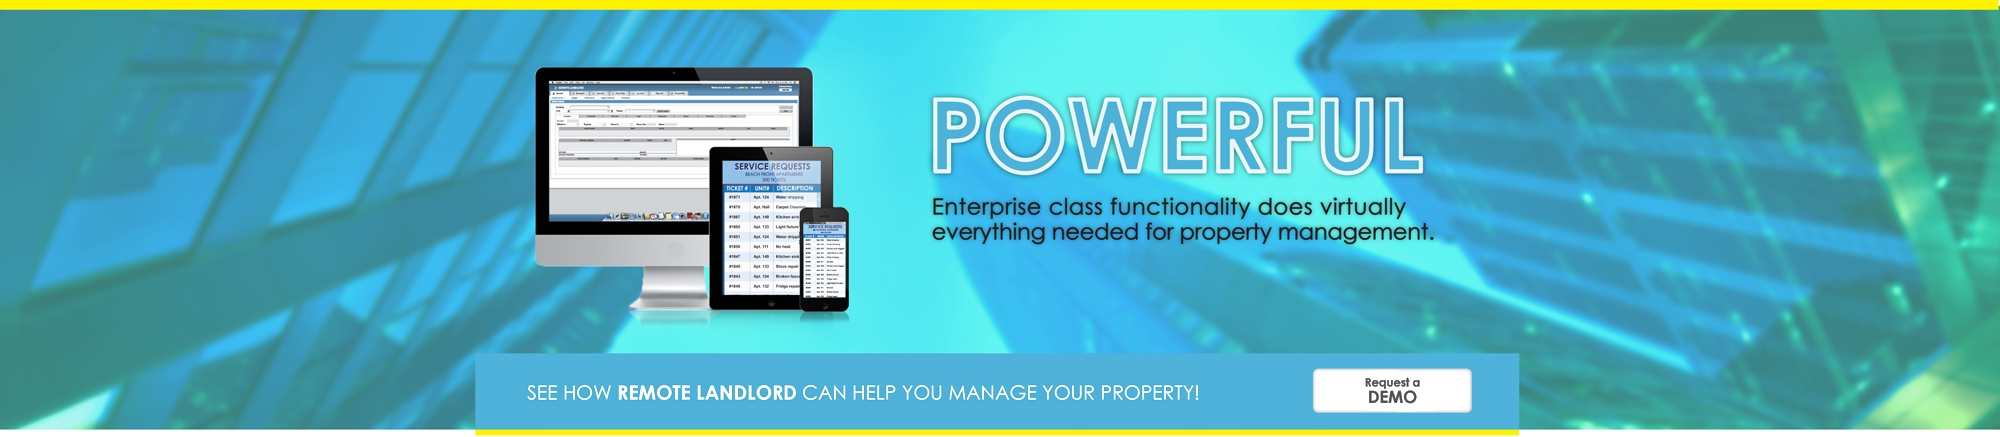 Remote Landlord is a powerful enterprise class software which does virtually everything needed for property management.